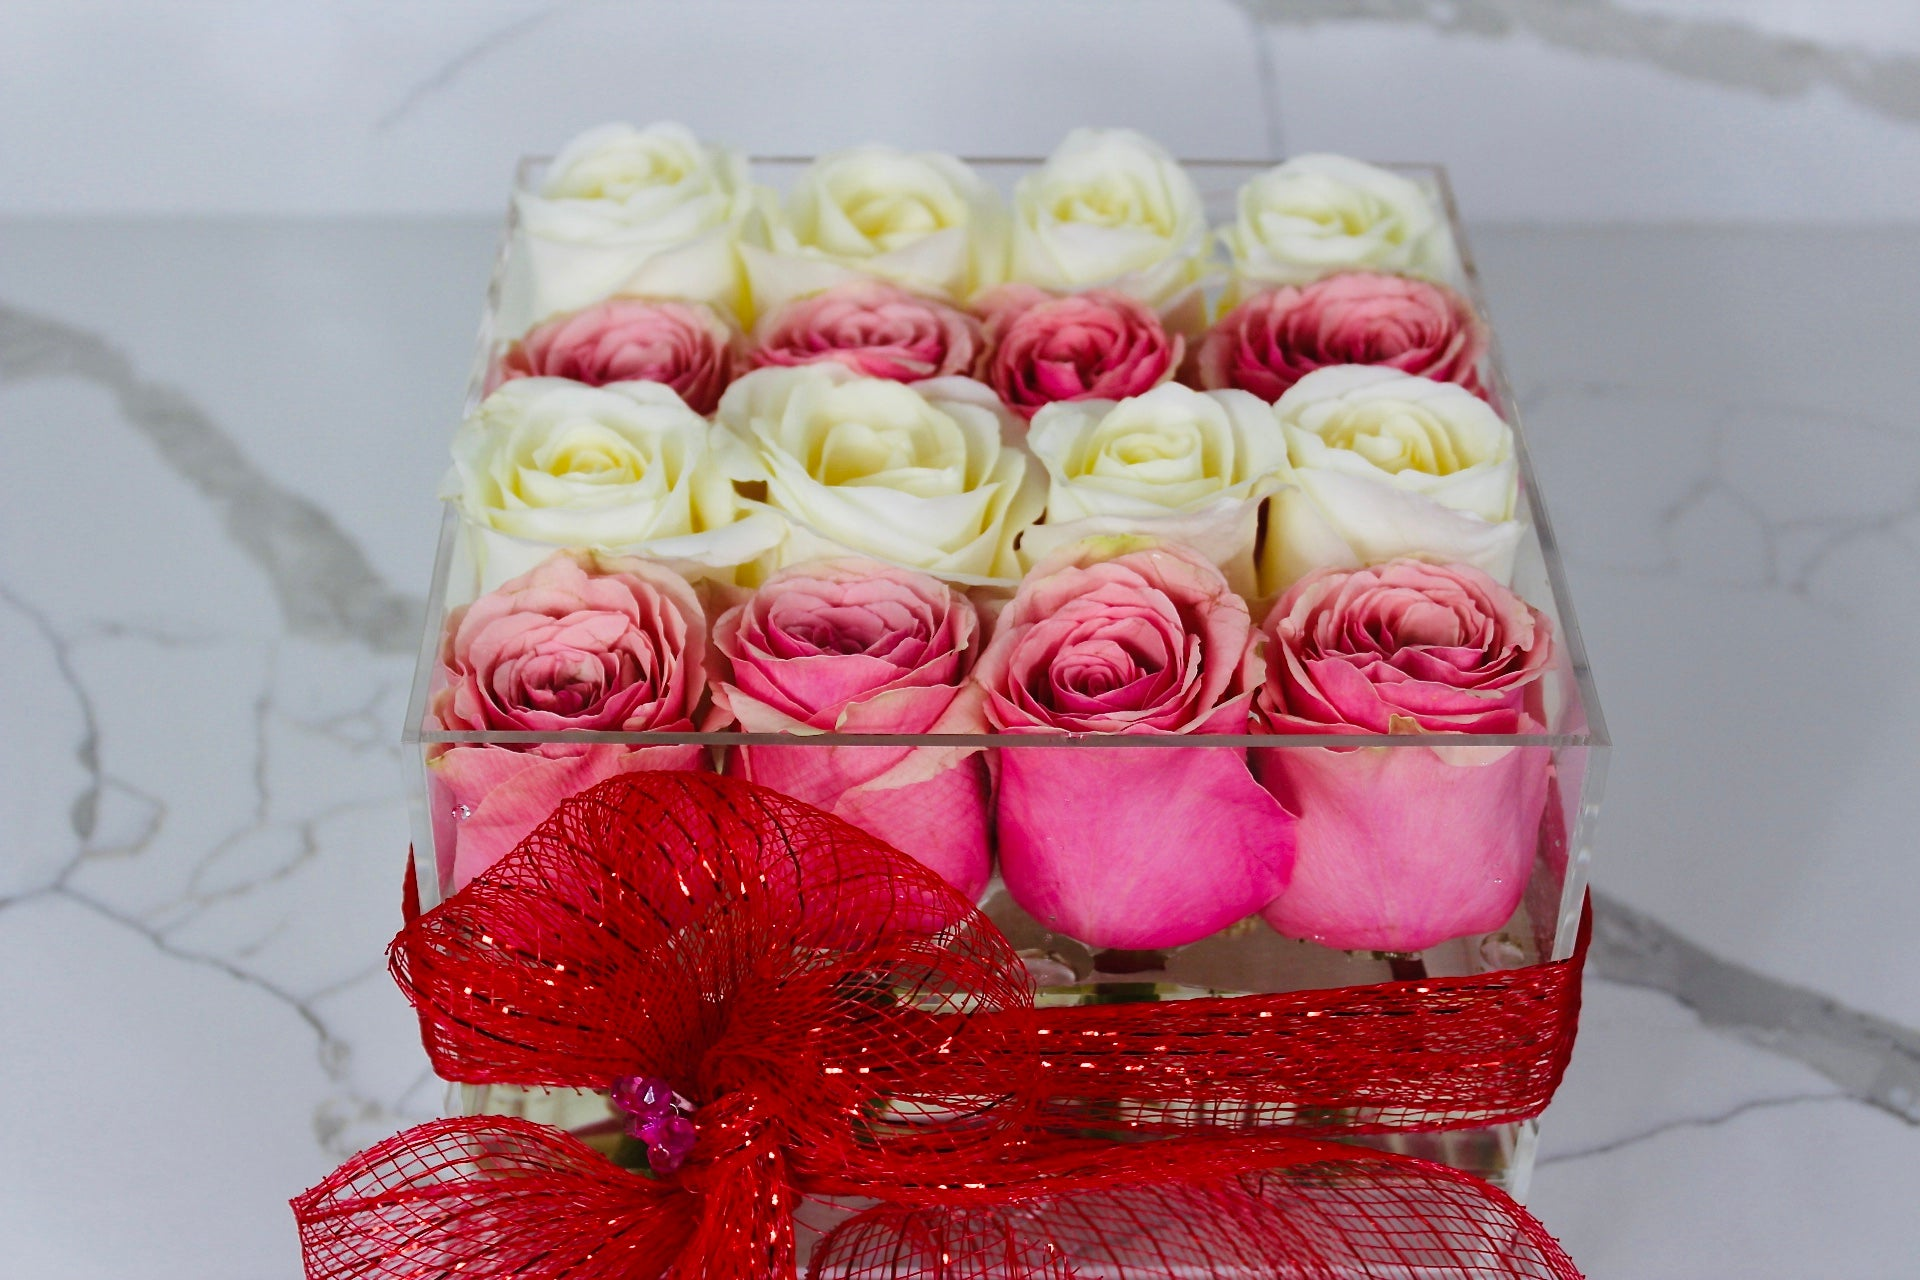 Modern Rose Box with preserved roses that last for years with a mix of ivory white roses and pink roses